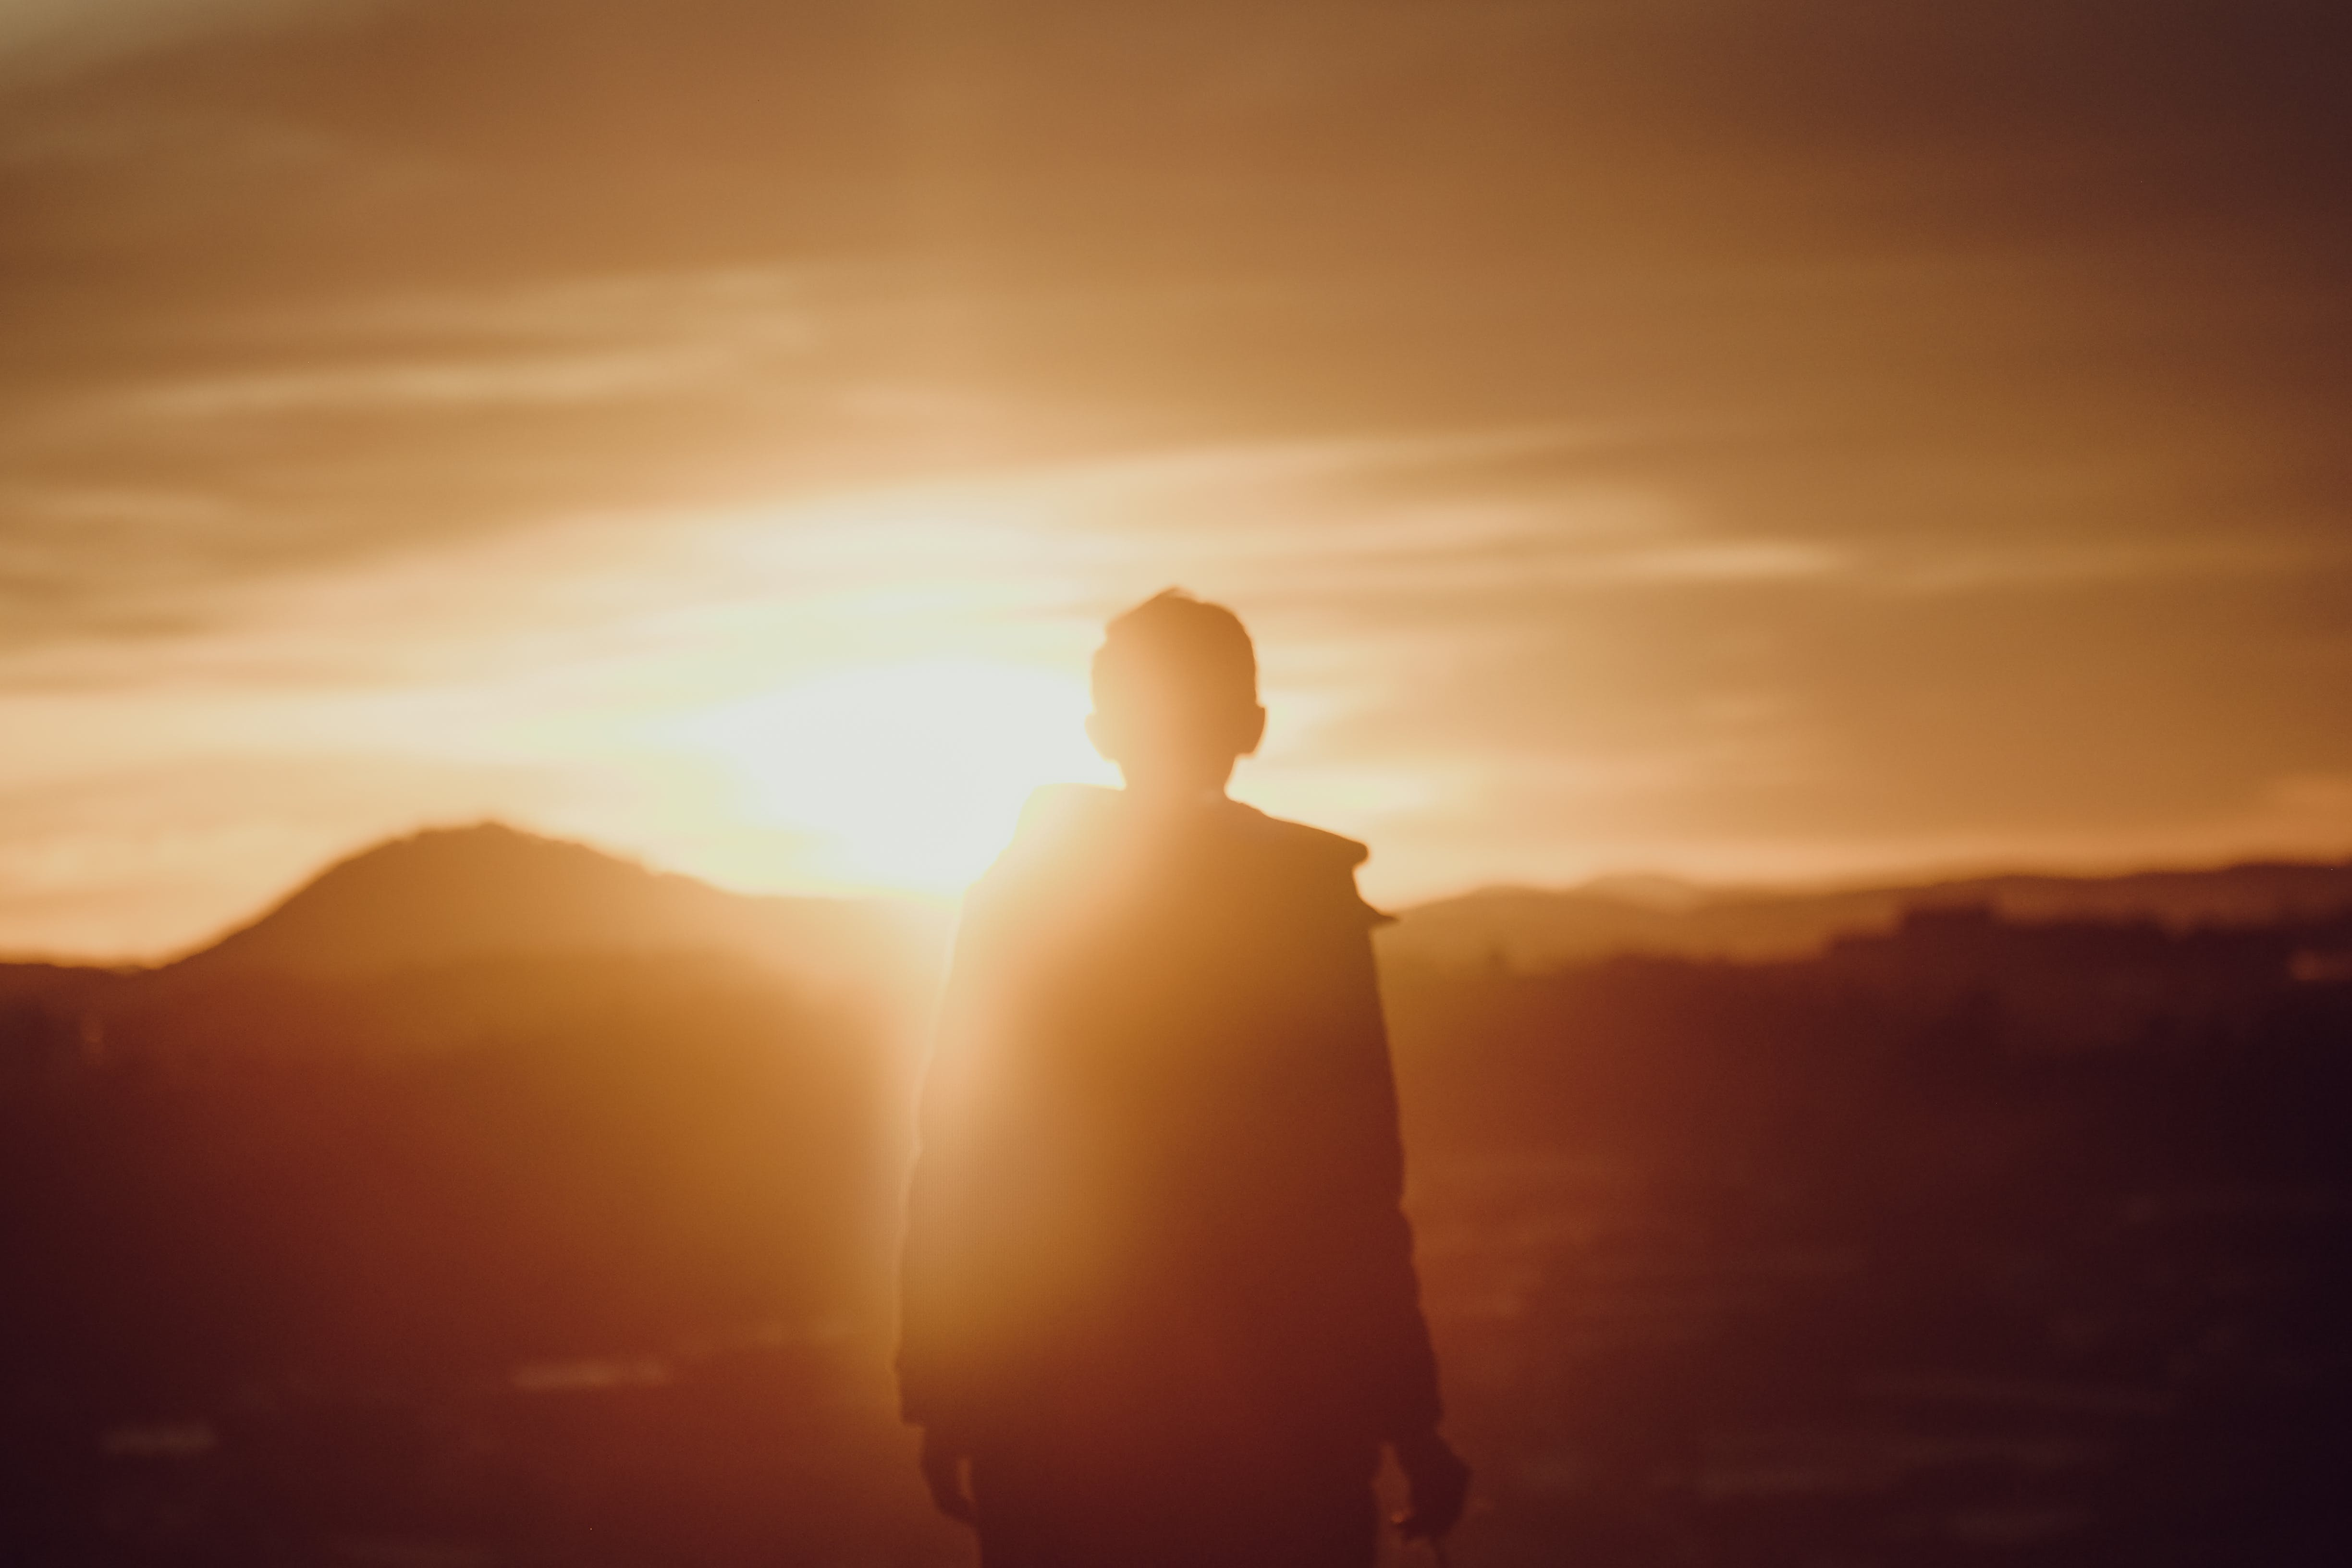 Silhouette of Person Standing Near Mountain during Sunset